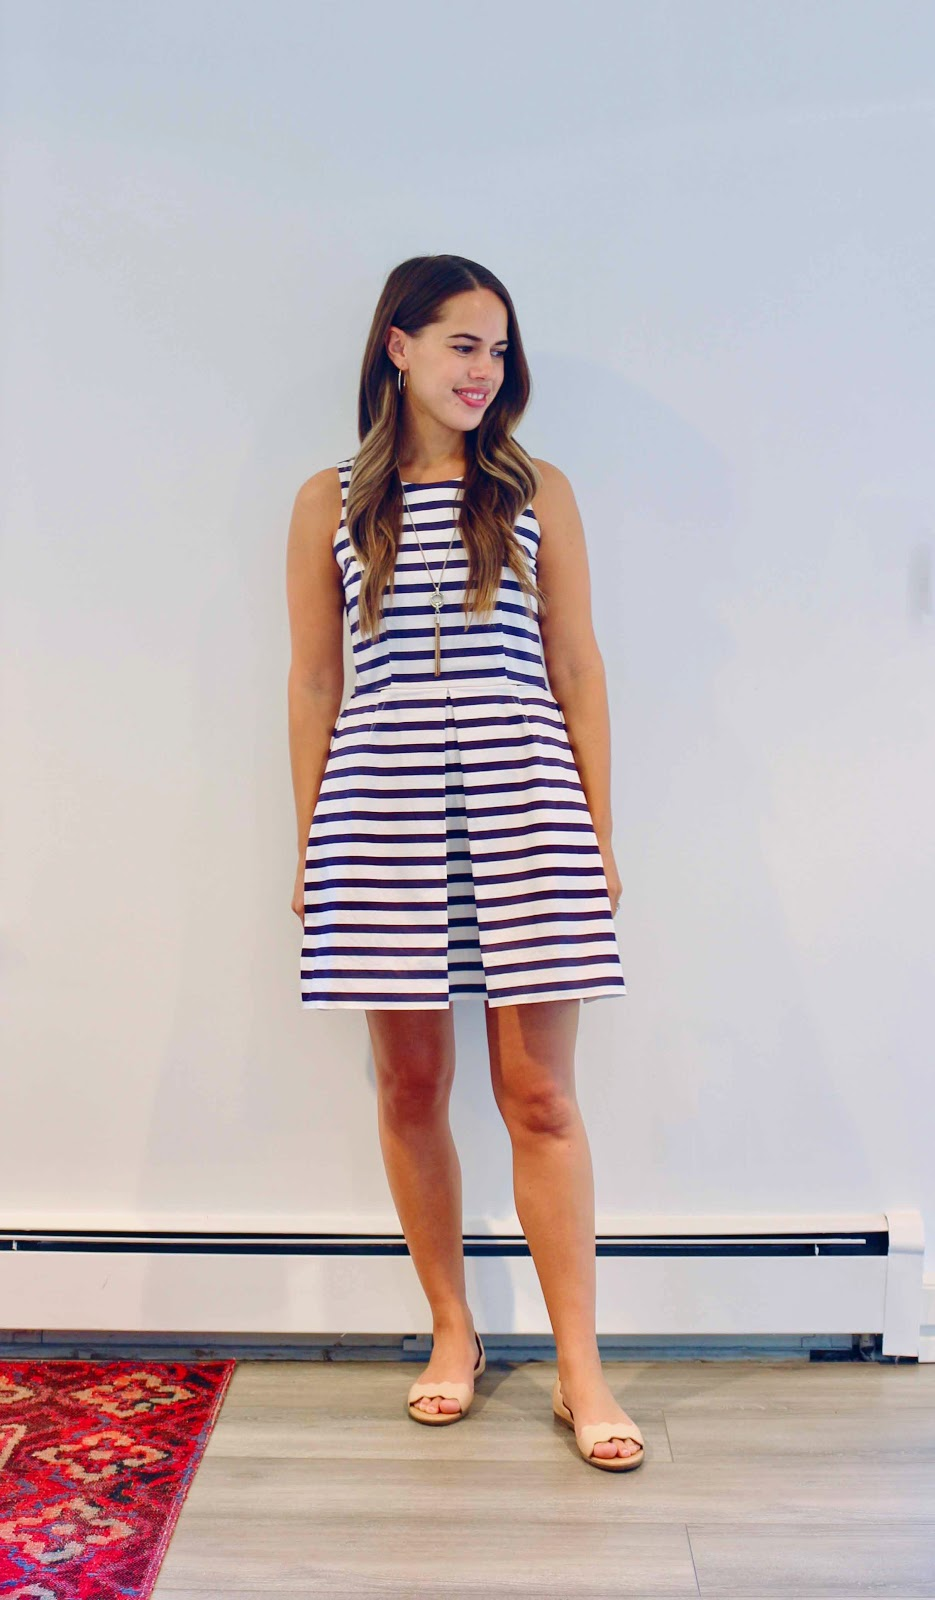 Jules in Flats - Striped Fit and Flare Dress (Business Casual Summer Workwear on Budget)